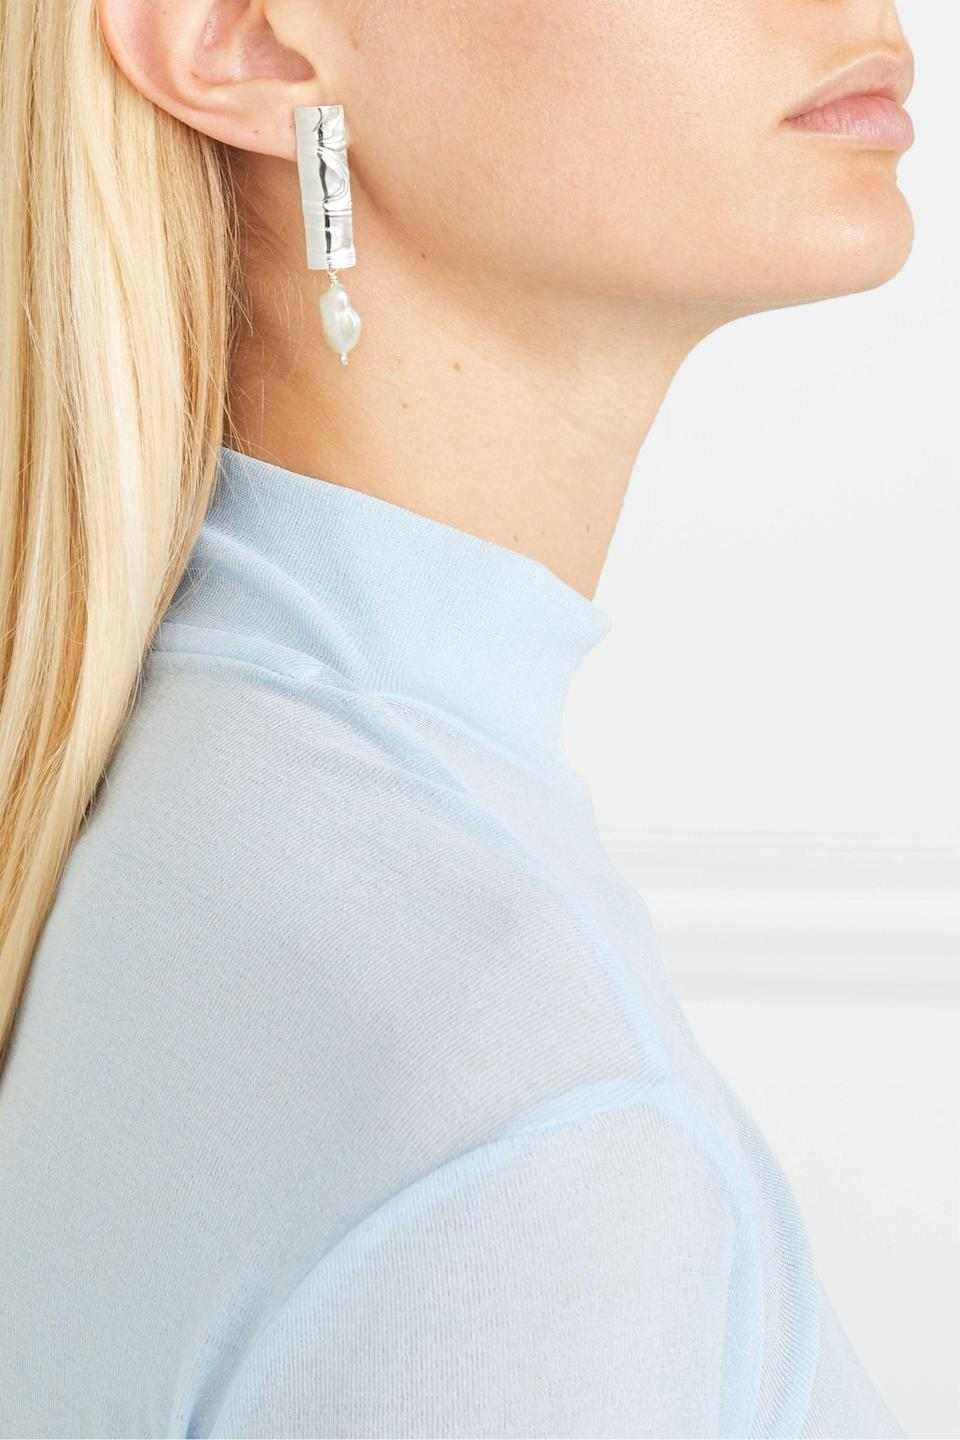 """<h3>Leigh Miller Sterling Silver and Pearl Earrings</h3> <br><br>It's rare that precious jewelry gets marked down, but it does happen once in a blue moon. That's why we always keep on eye on the sale section on sites like Net-a-Porter, to see if any of our wish-listed baubles have made the cut.<br><br><em>Shop jewelry on sale at <strong><a href=""""https://www.net-a-porter.com/en-us/shop/sale/jewelry-and-watches"""" rel=""""nofollow noopener"""" target=""""_blank"""" data-ylk=""""slk:Net-A-Porter"""" class=""""link rapid-noclick-resp"""">Net-A-Porter</a></strong></em><br><br><strong>Leigh Miller</strong> Sterling Silver and Pearl Earrings, $, available at <a href=""""https://go.skimresources.com/?id=30283X879131&url=https%3A%2F%2Fwww.net-a-porter.com%2Fen-us%2Fshop%2Fproduct%2Fleigh-miller%2Fnet-sustain-silver-and-pearl-earrings%2F1186155"""" rel=""""nofollow noopener"""" target=""""_blank"""" data-ylk=""""slk:Net-A-Porter"""" class=""""link rapid-noclick-resp"""">Net-A-Porter</a><br><br><br><br>"""